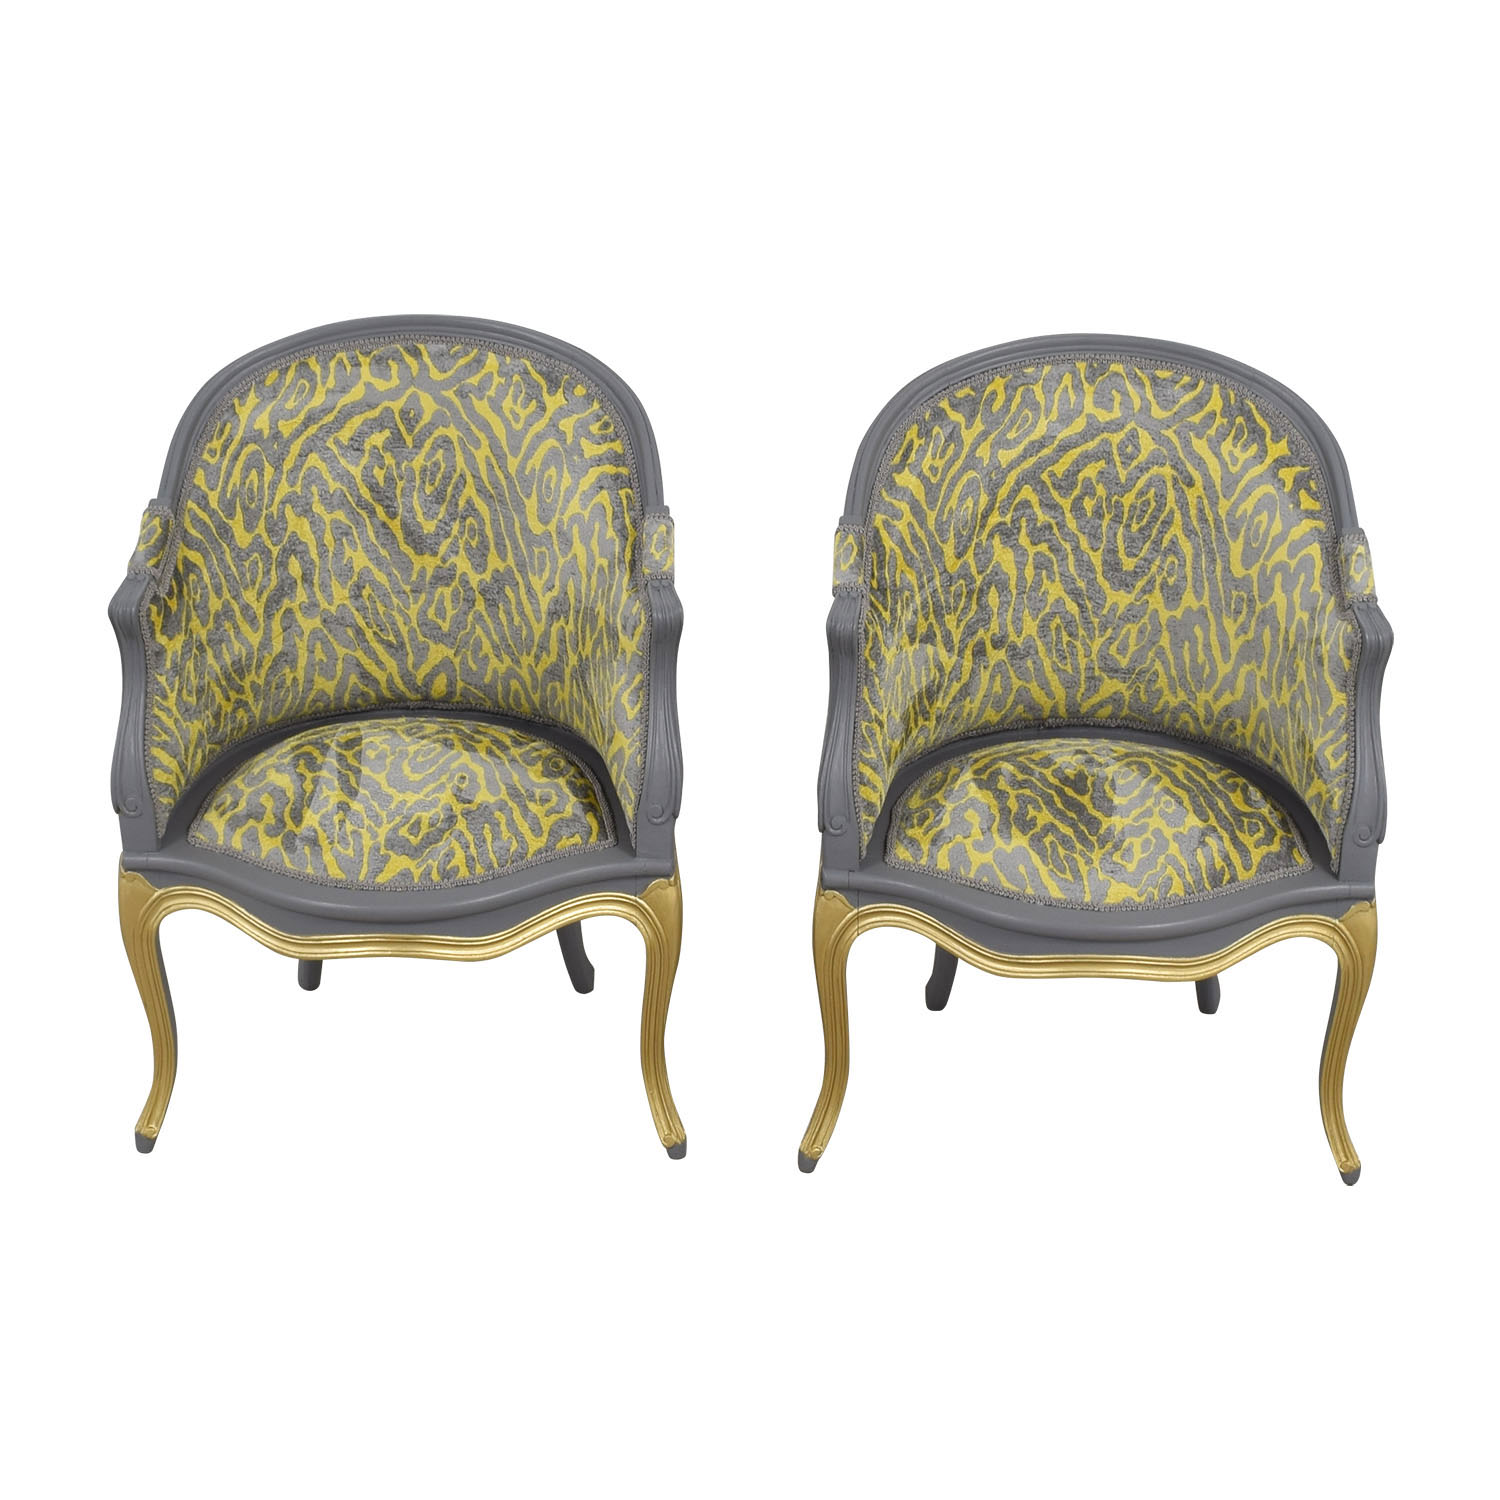 Country French Grey and Yellow Accent Chairs